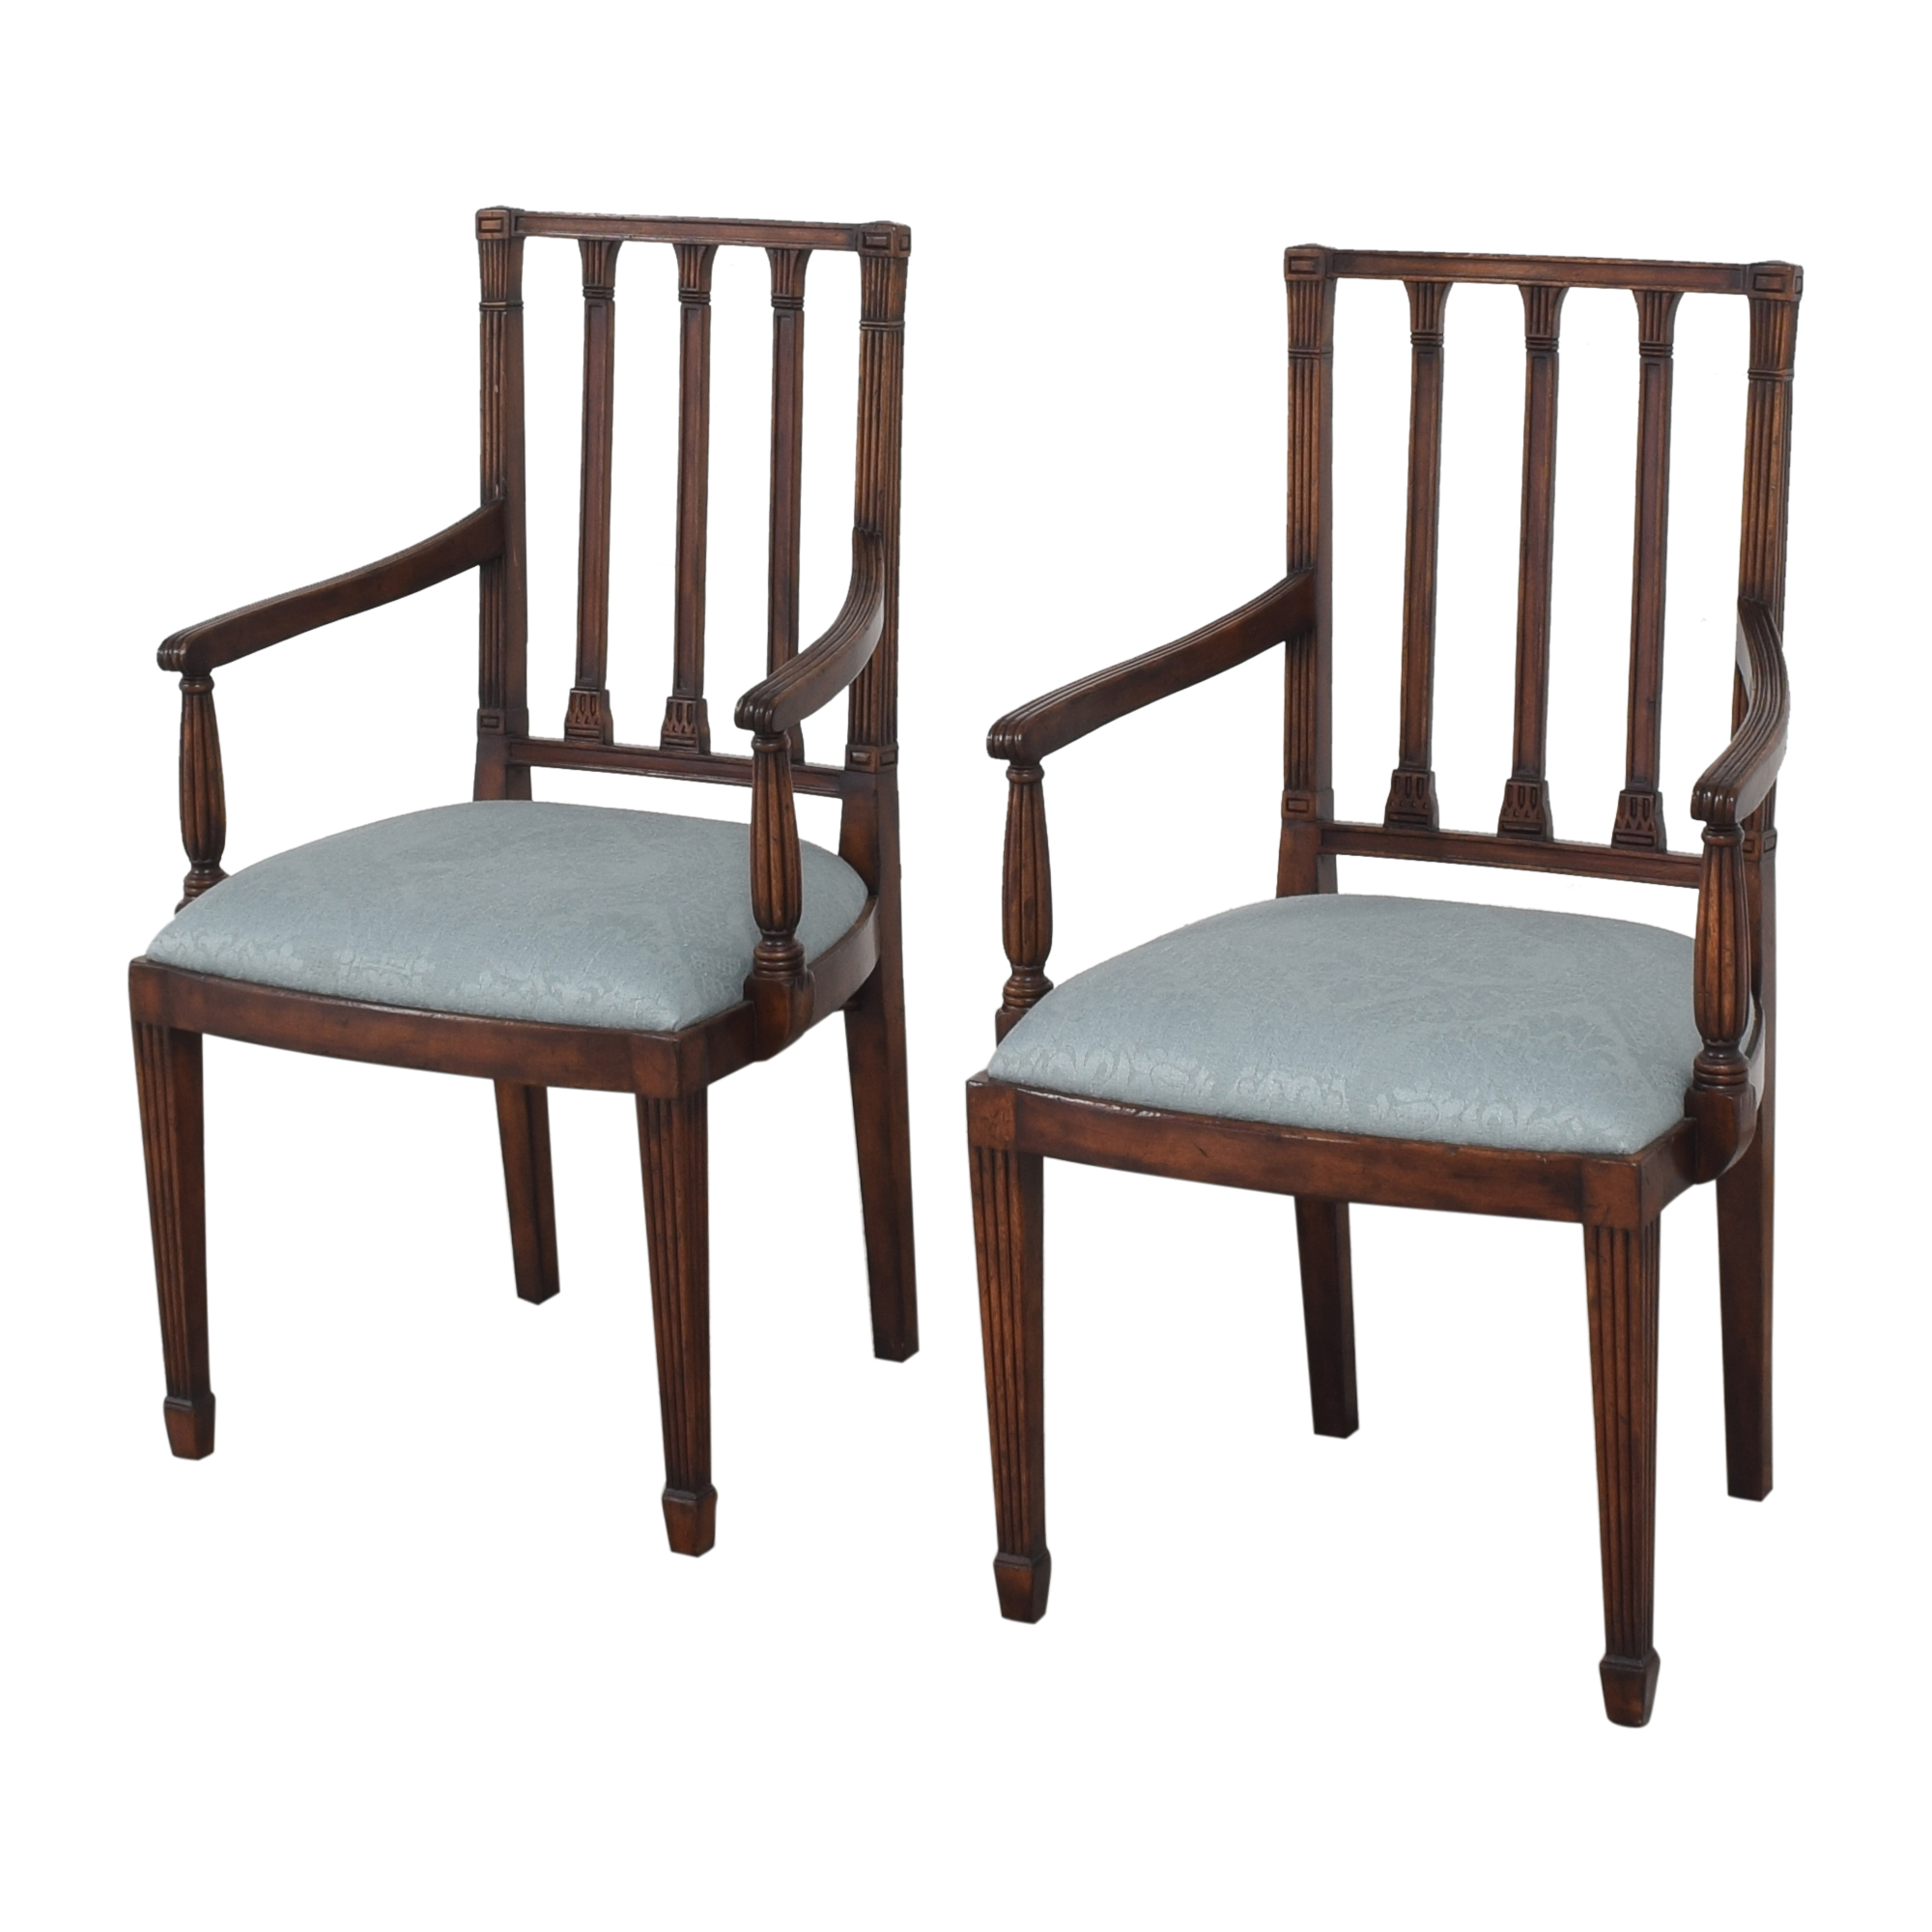 shop English Country Home Upholstered Dining Arm Chairs English Country Home Chairs